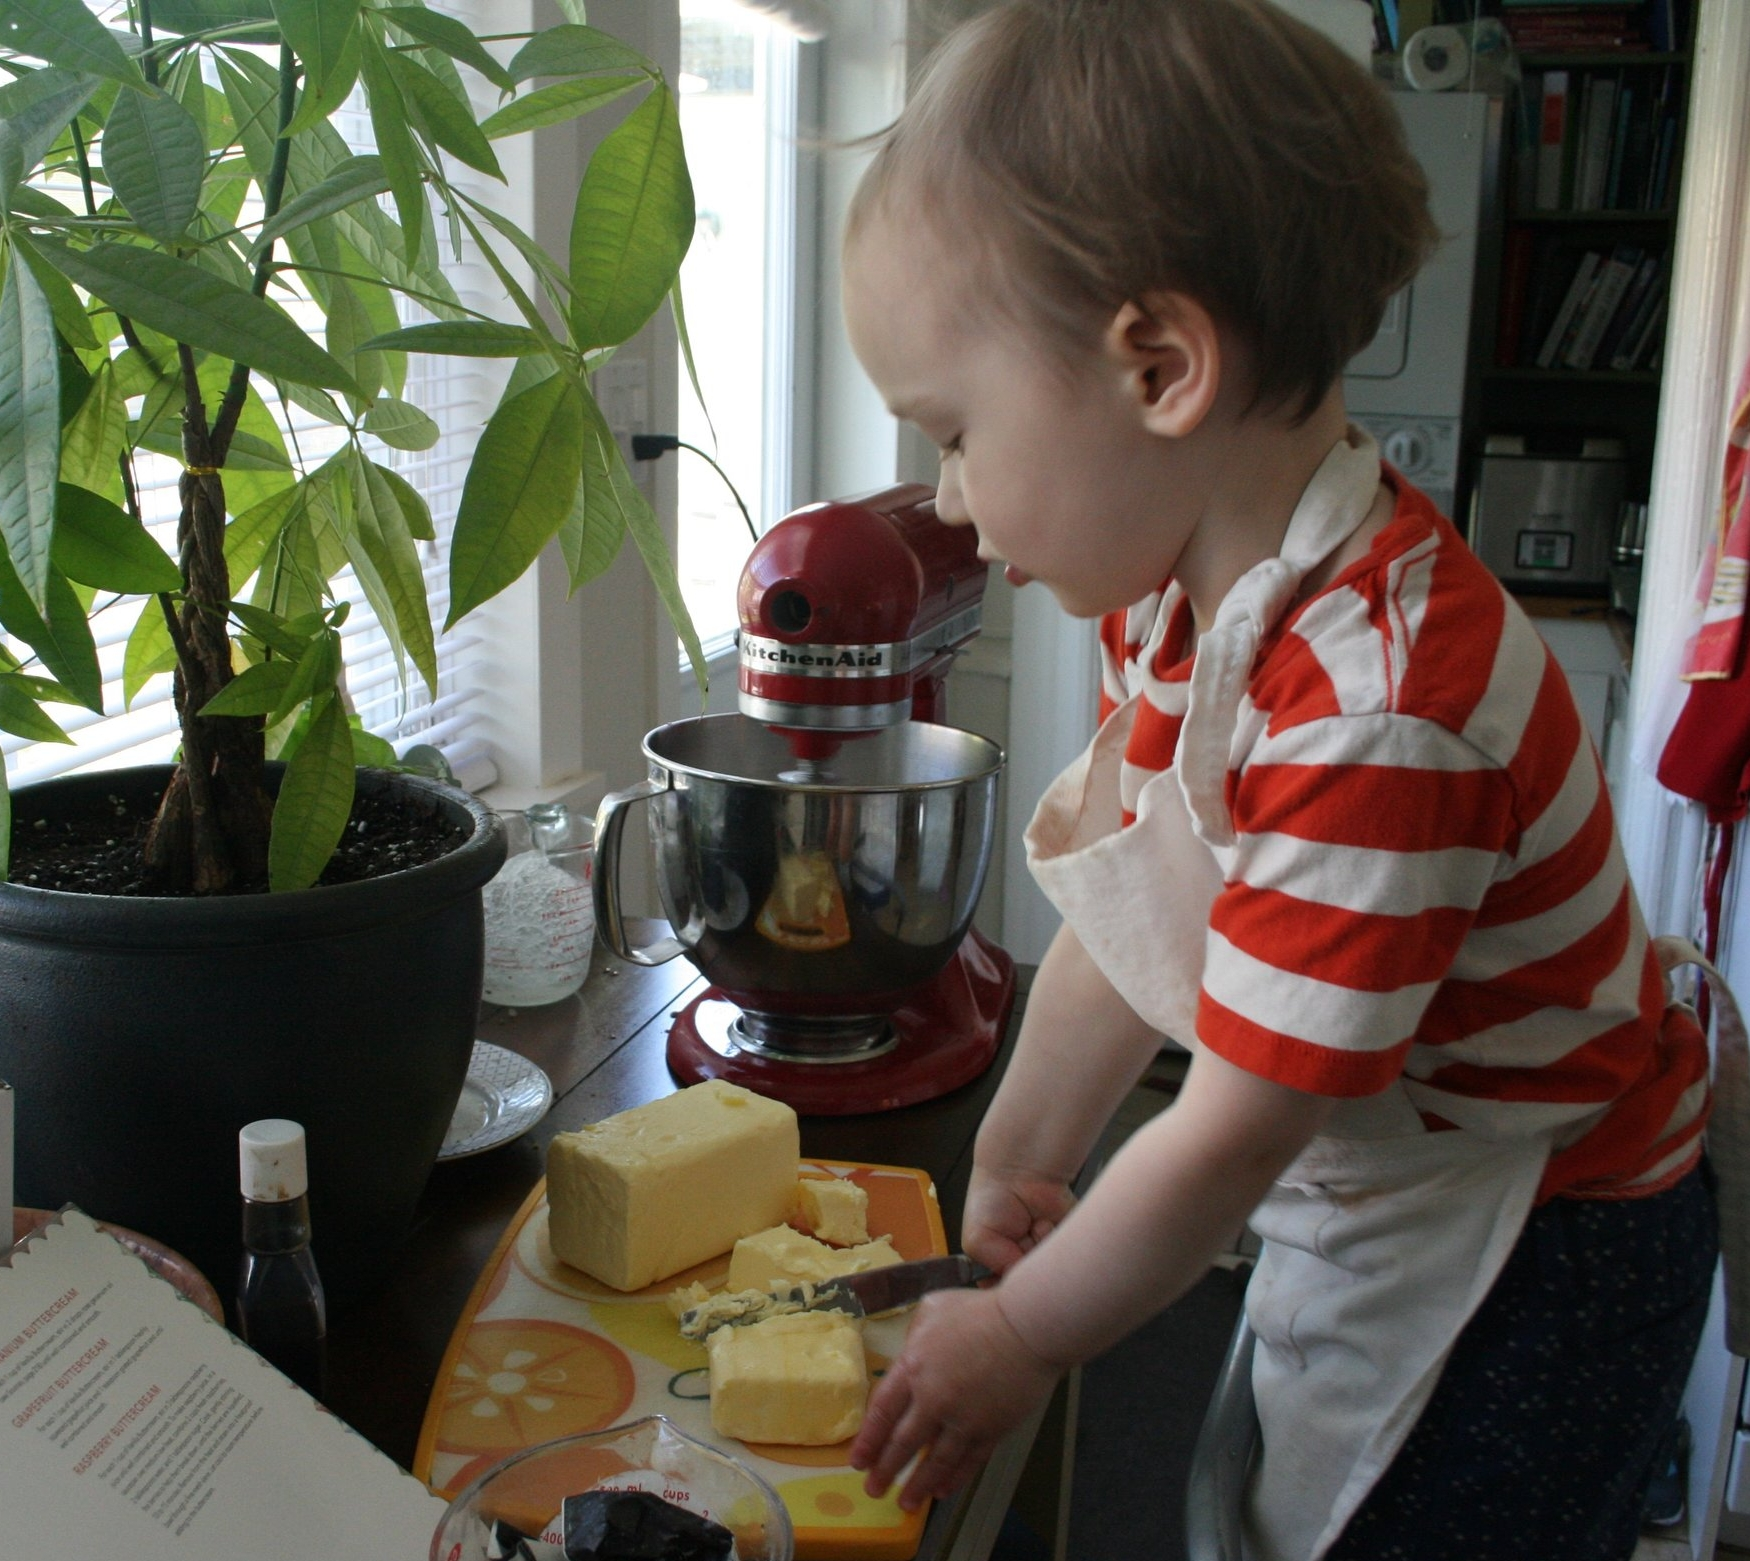 Almost-3-year-old Cash cutting the butter for his buttercream. Yes, all the butter you see goes in the recipe!